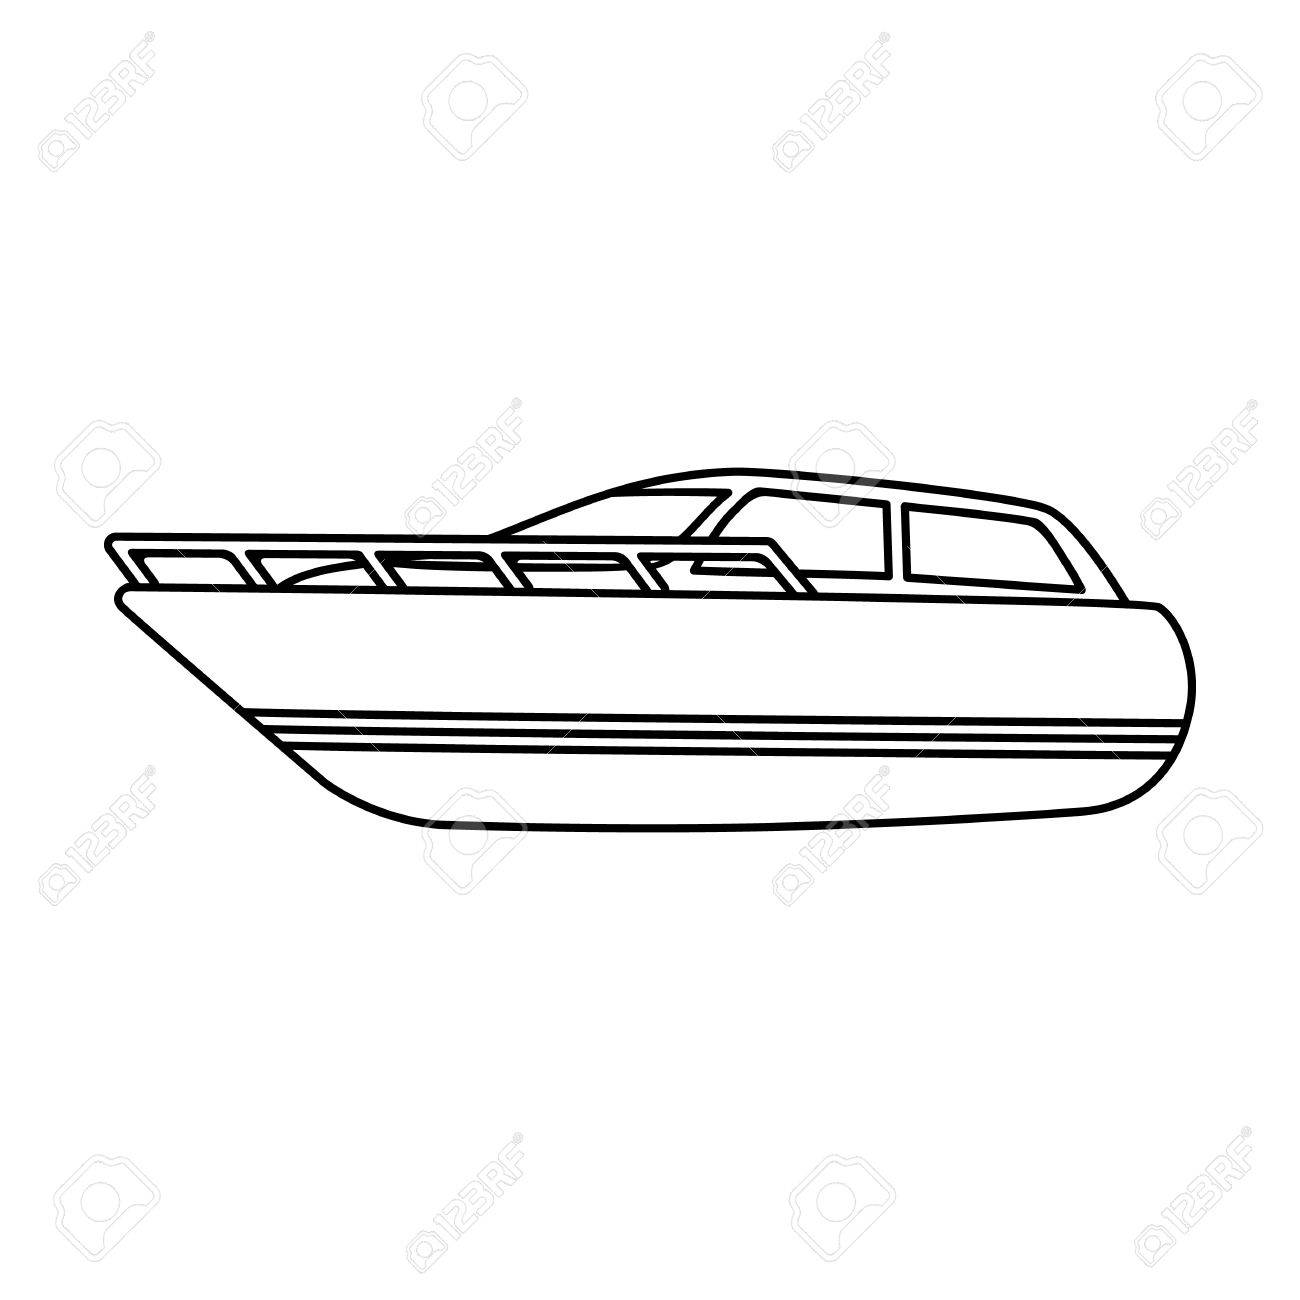 White motor boat to transport a few people One of the types of